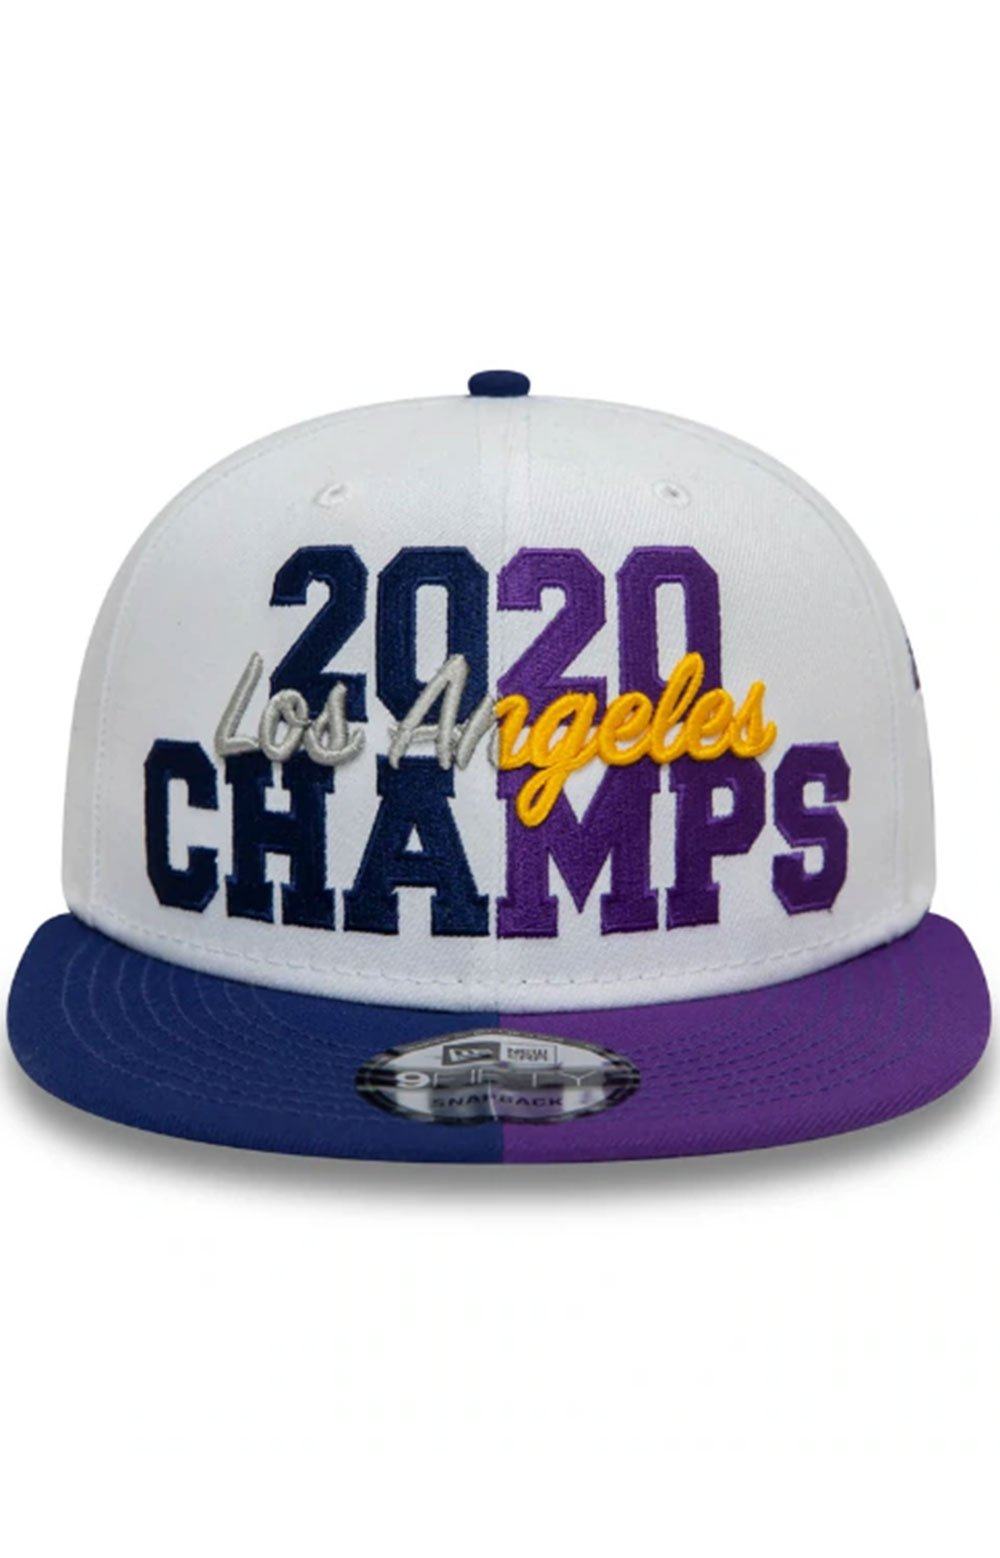 Los Angeles Co Champs 2020 9FIFTY Snap-Back - White  4